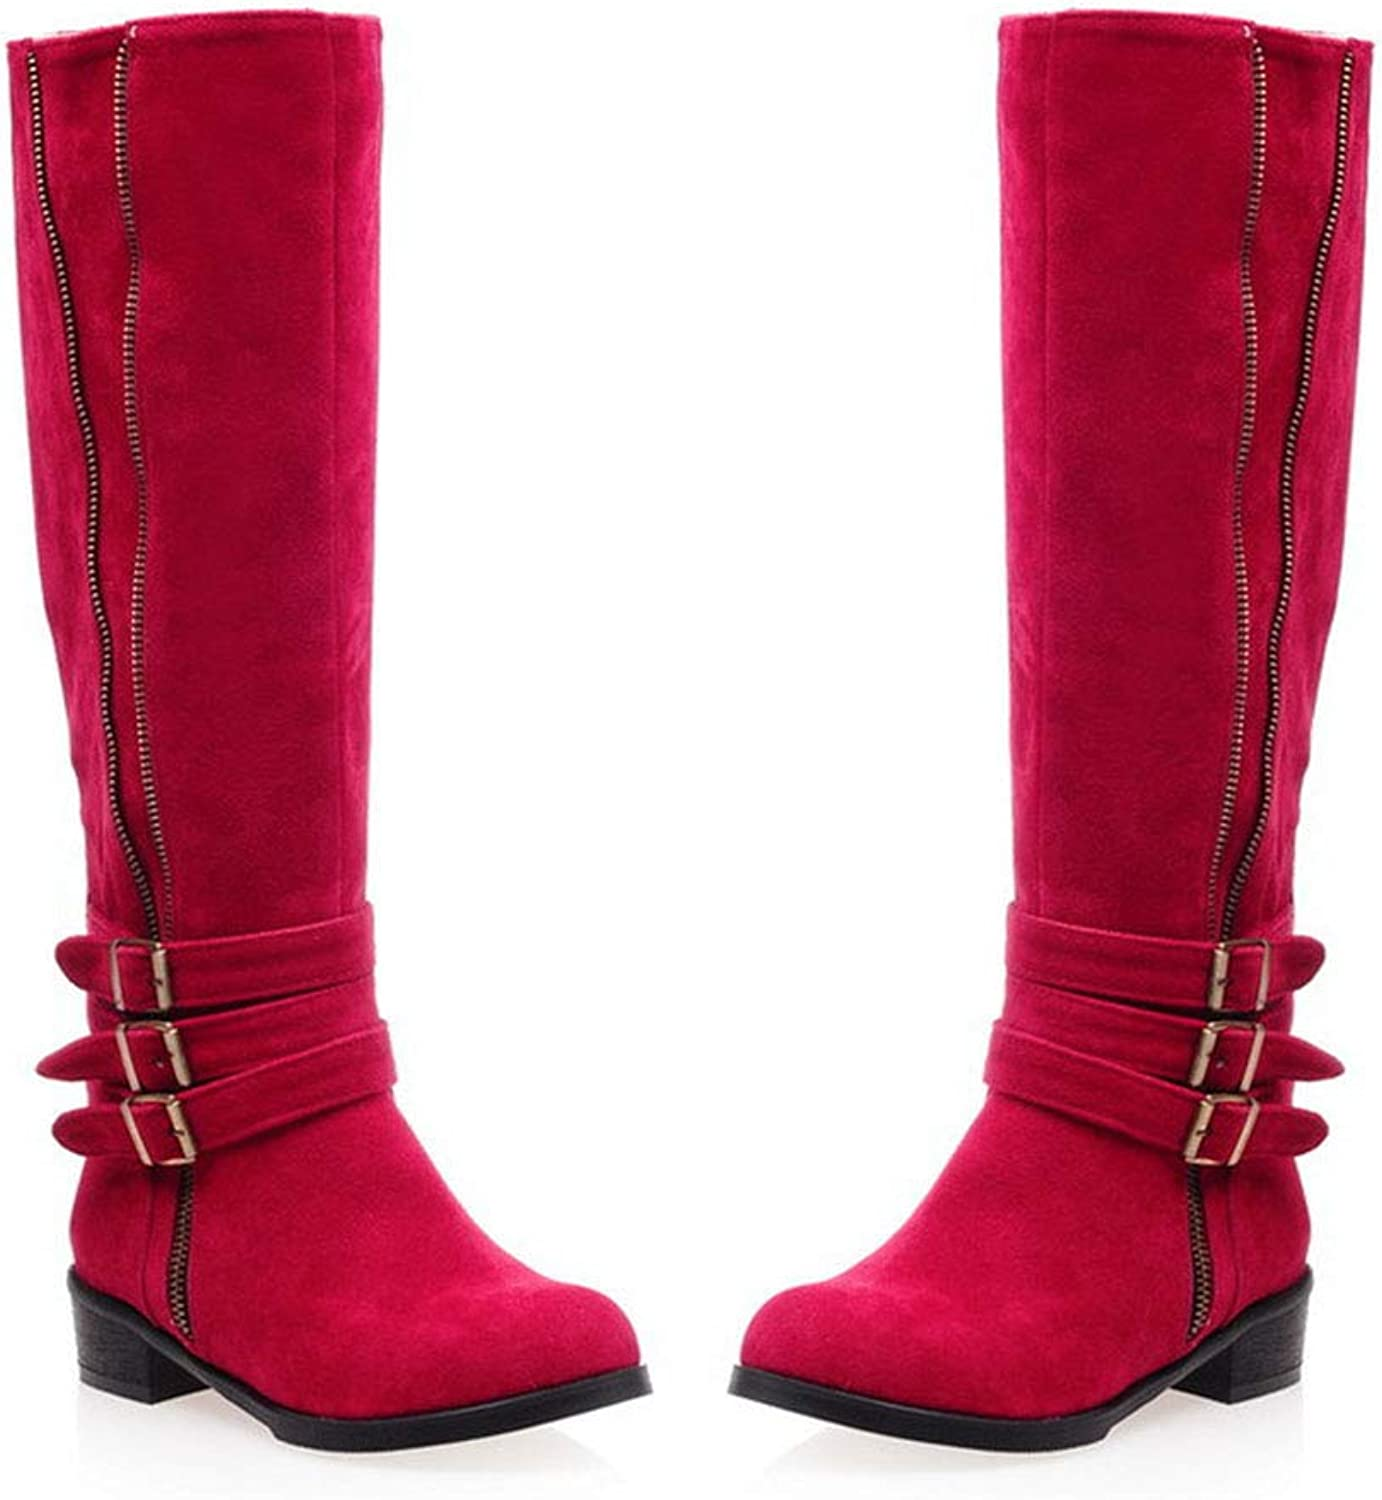 Round Head Buckle Zipper Female Boots Long Tube Fang He Knight Boots